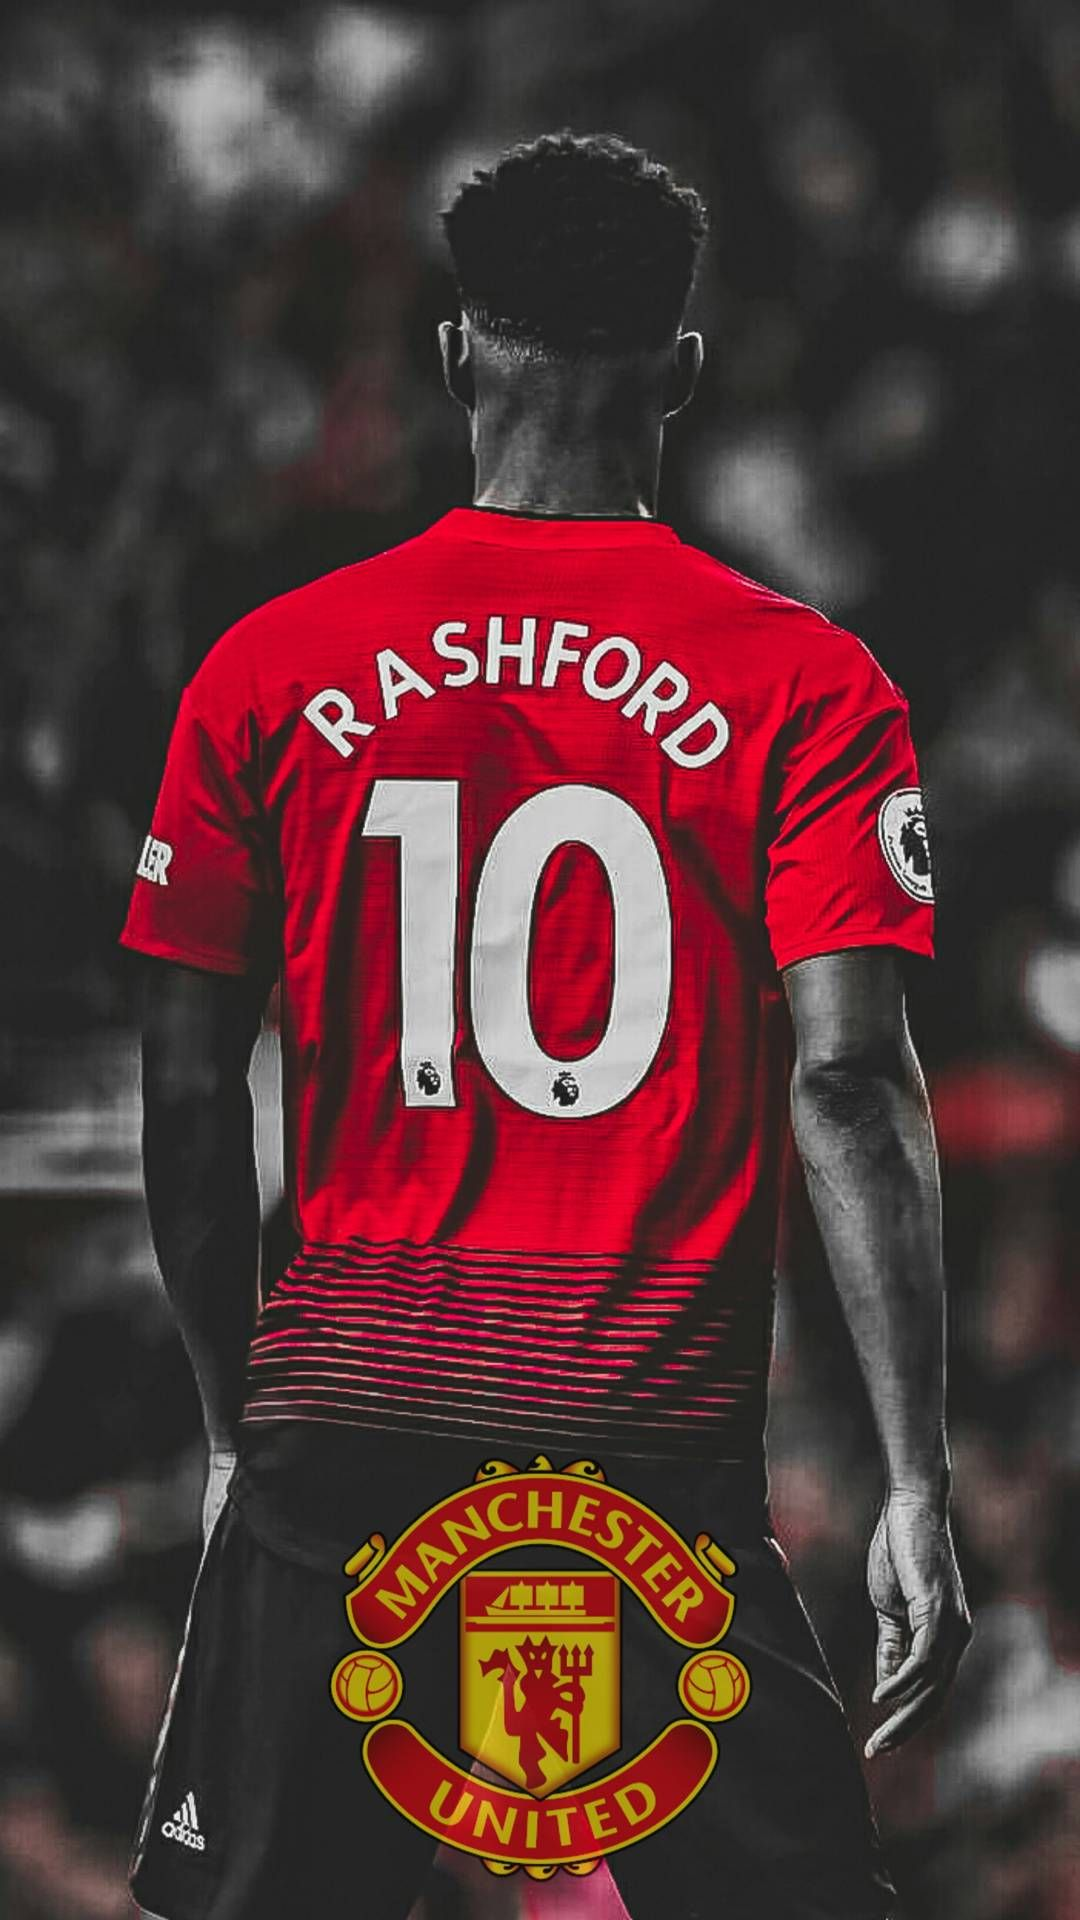 Manchester united football club phonetablet wallpapers